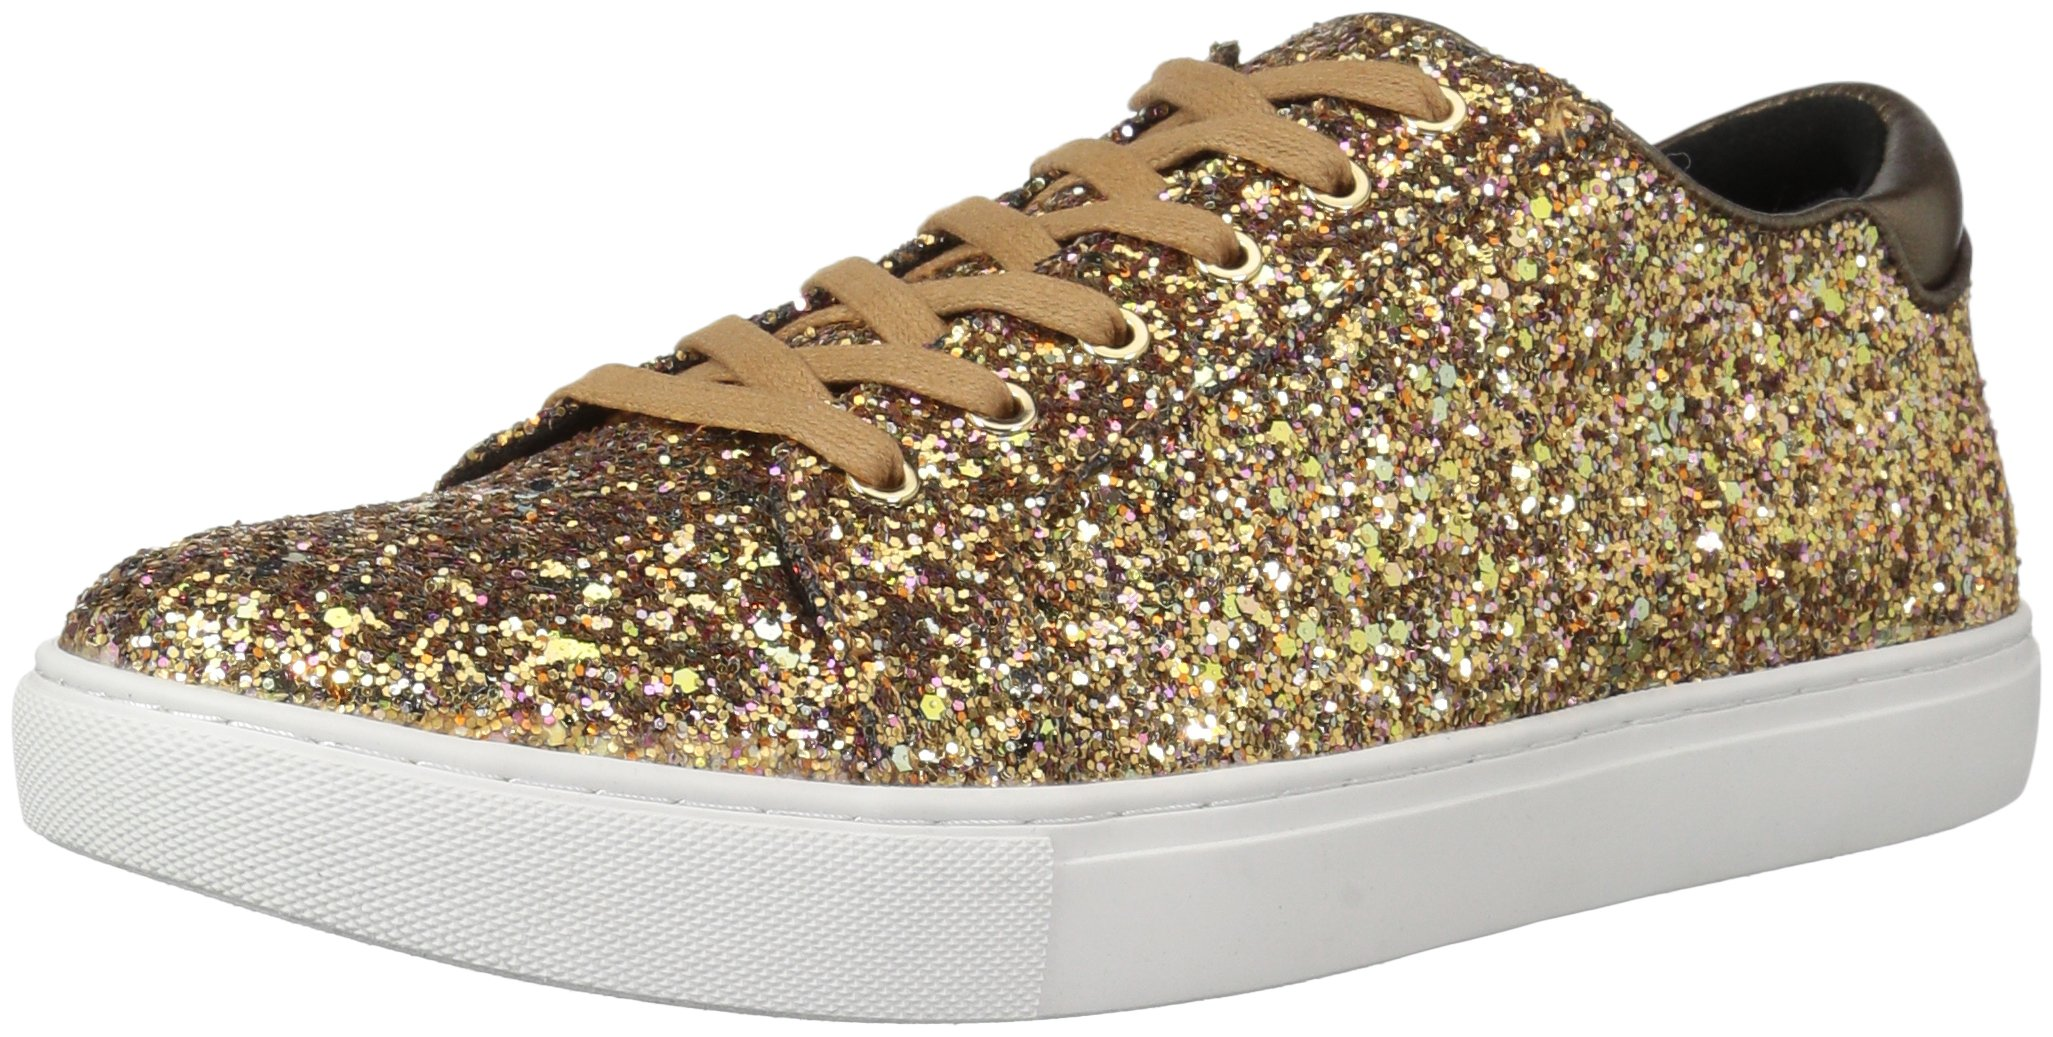 Kenneth Cole New York Women's Kam Techni-Cole Lace up Glitter Fashion Sneaker, Bronze, 9 M US